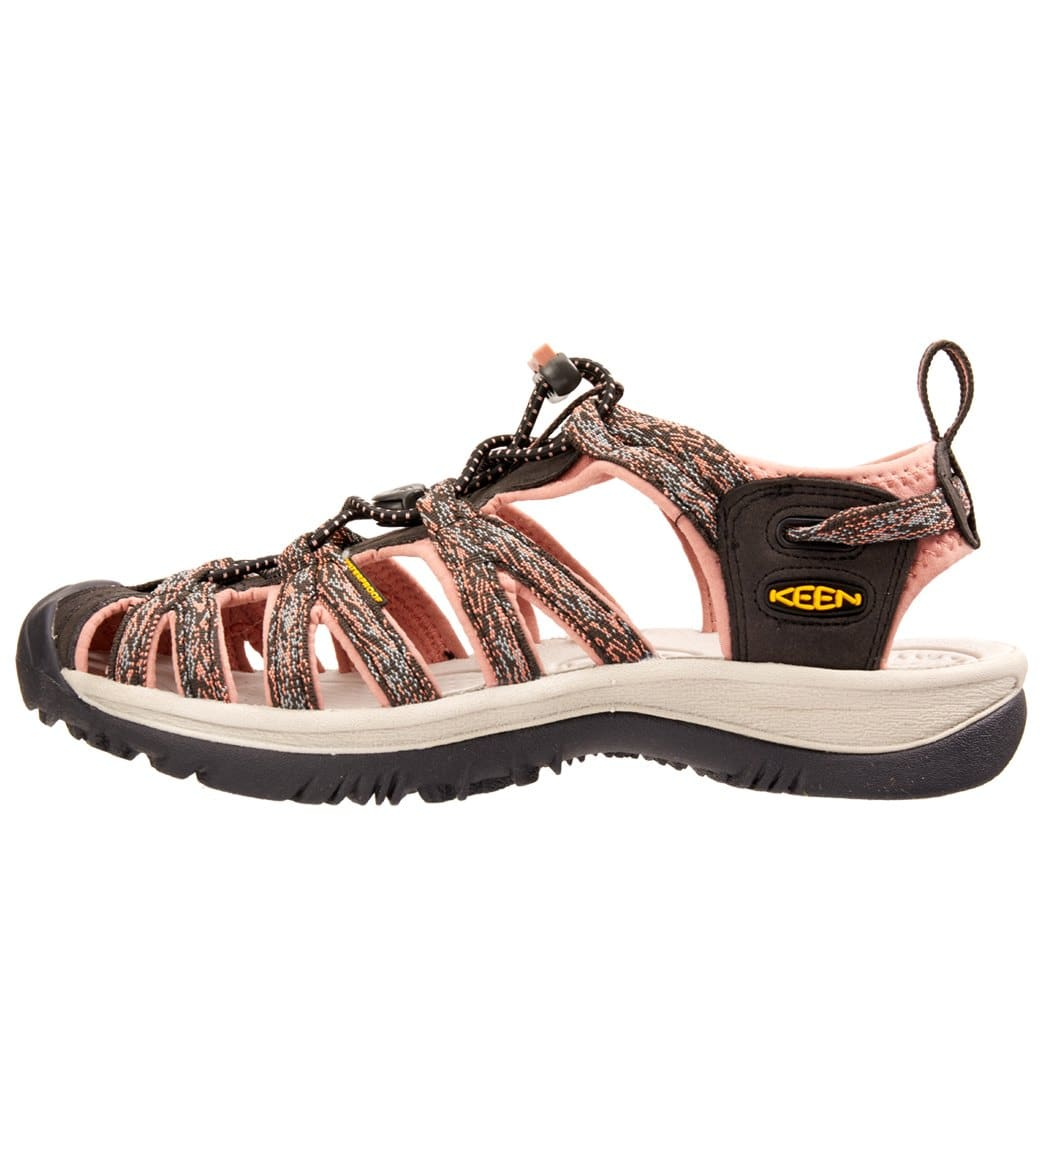 19d328557d7 Keen Women s Whisper Water Shoes at SwimOutlet.com - Free Shipping